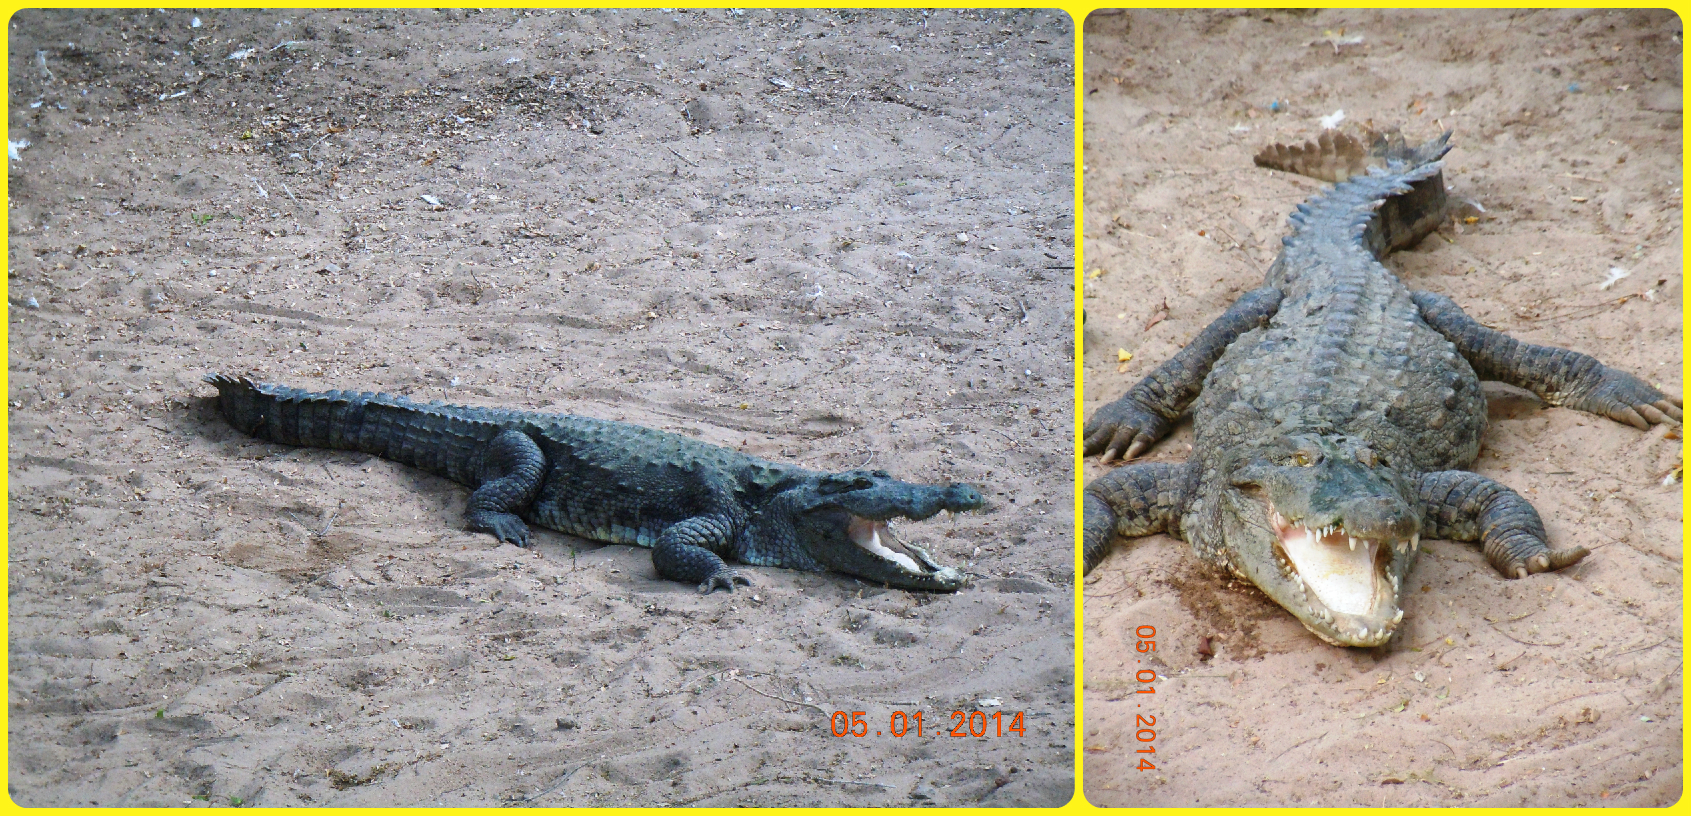 Front and side views of the Marsh Crocodile